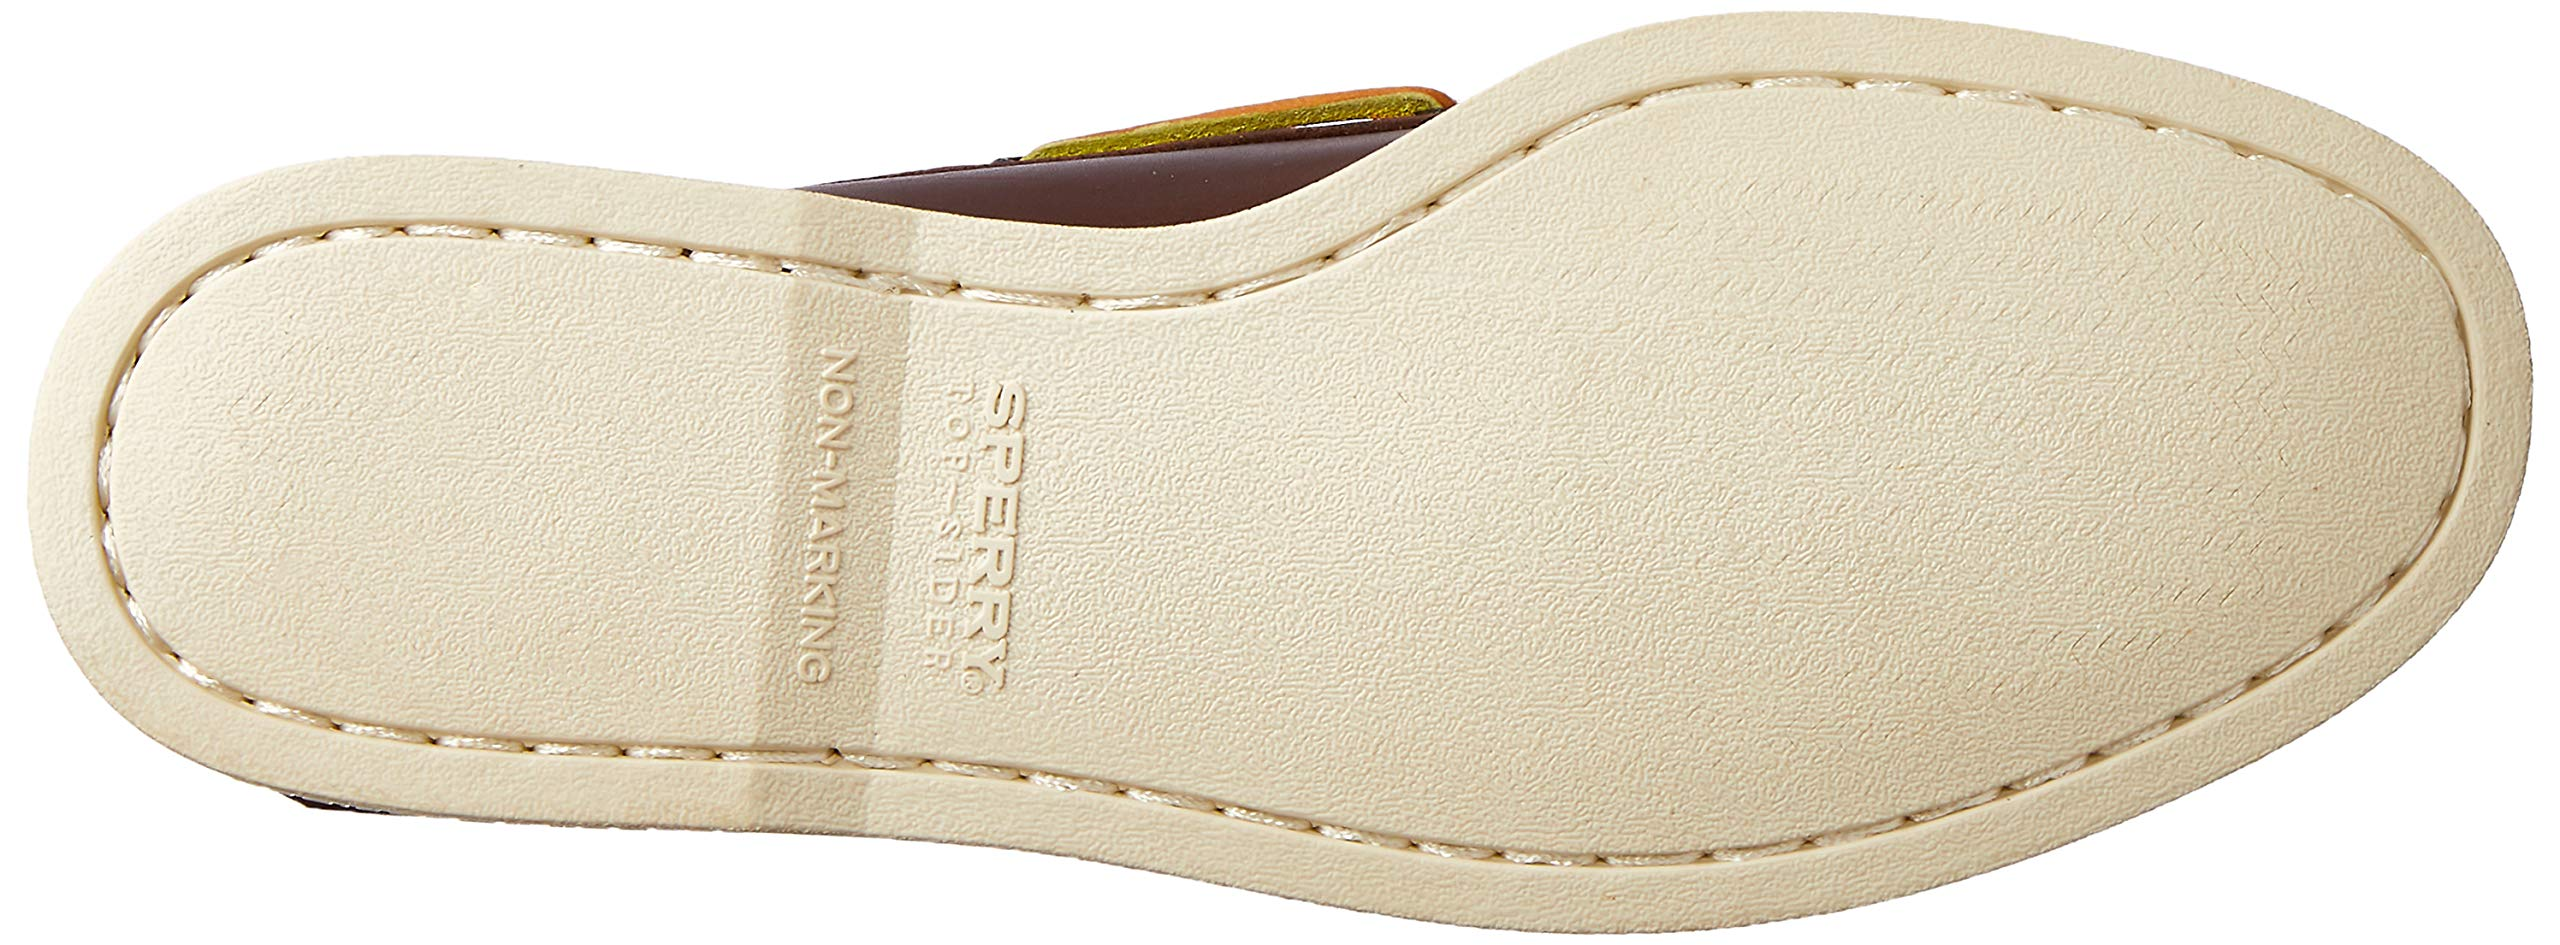 Sperry Men's A/O 2 Eye Boat Shoe,Brown,11.5 M US by SPERRY (Image #3)